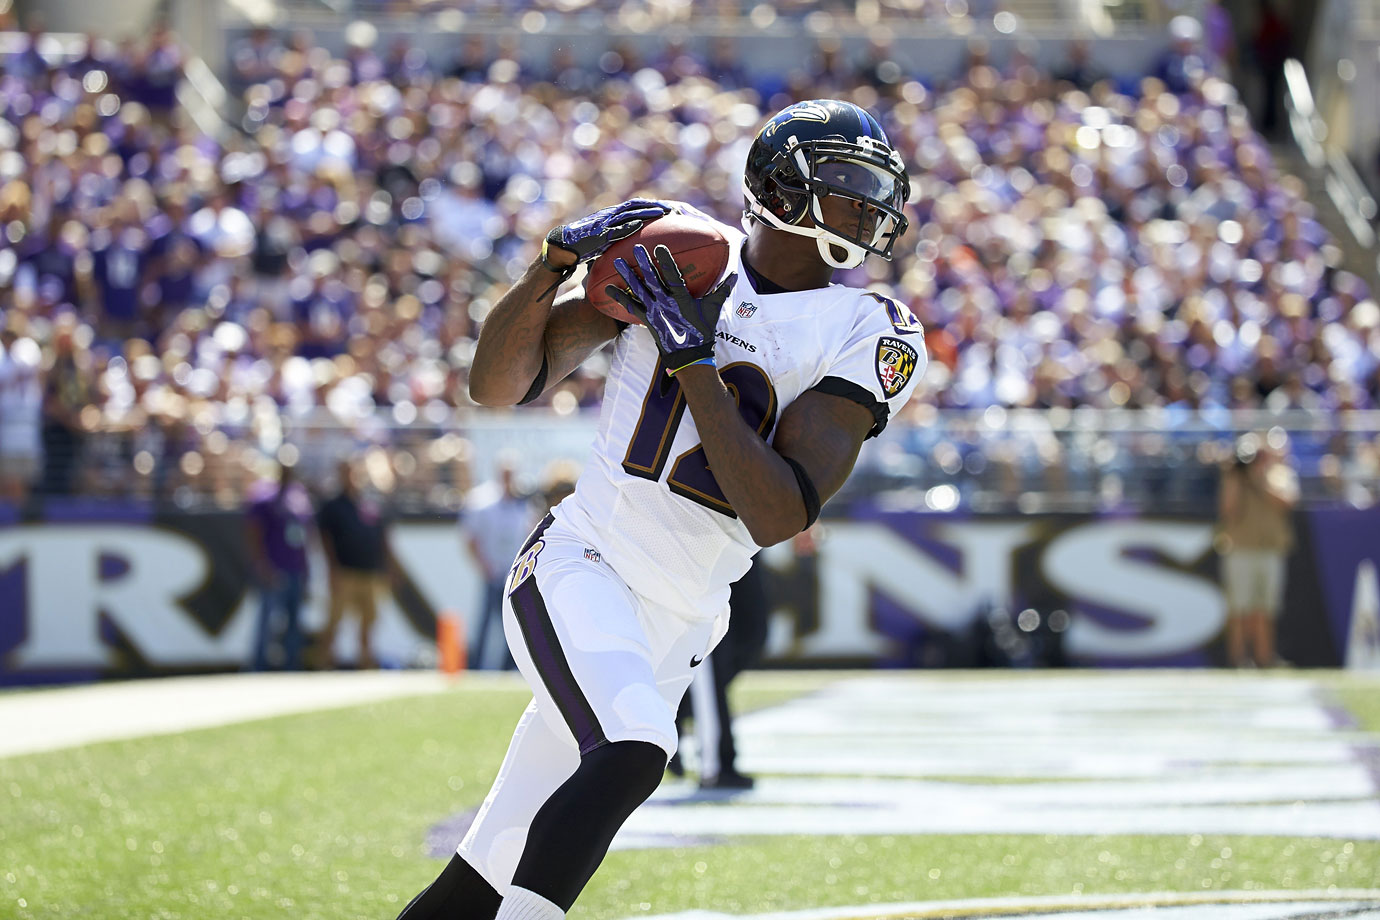 Old team: Ravens; New team: Chargers